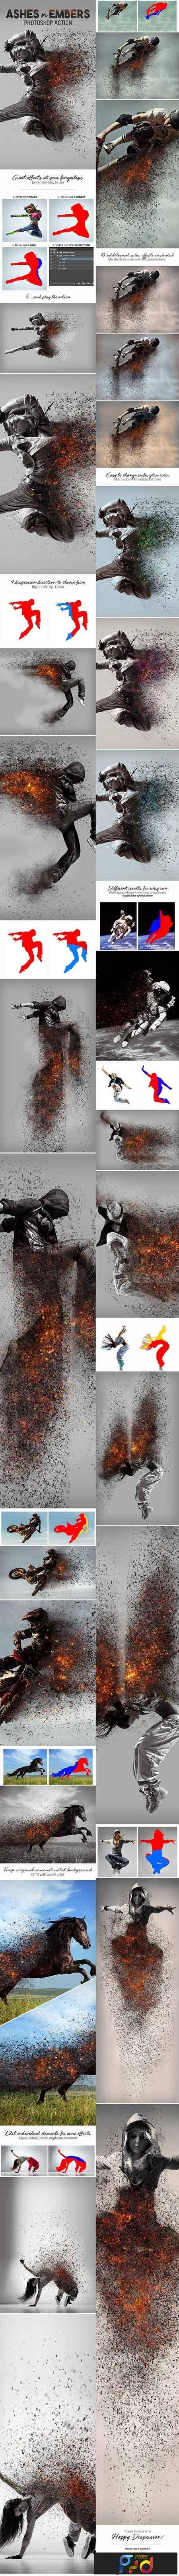 1801157 Ashes n Embers Photoshop Action 18525809 - Free PSD download, free photoshop action, lightroom preset, plugin, vector, stock, font... with Google Drive links